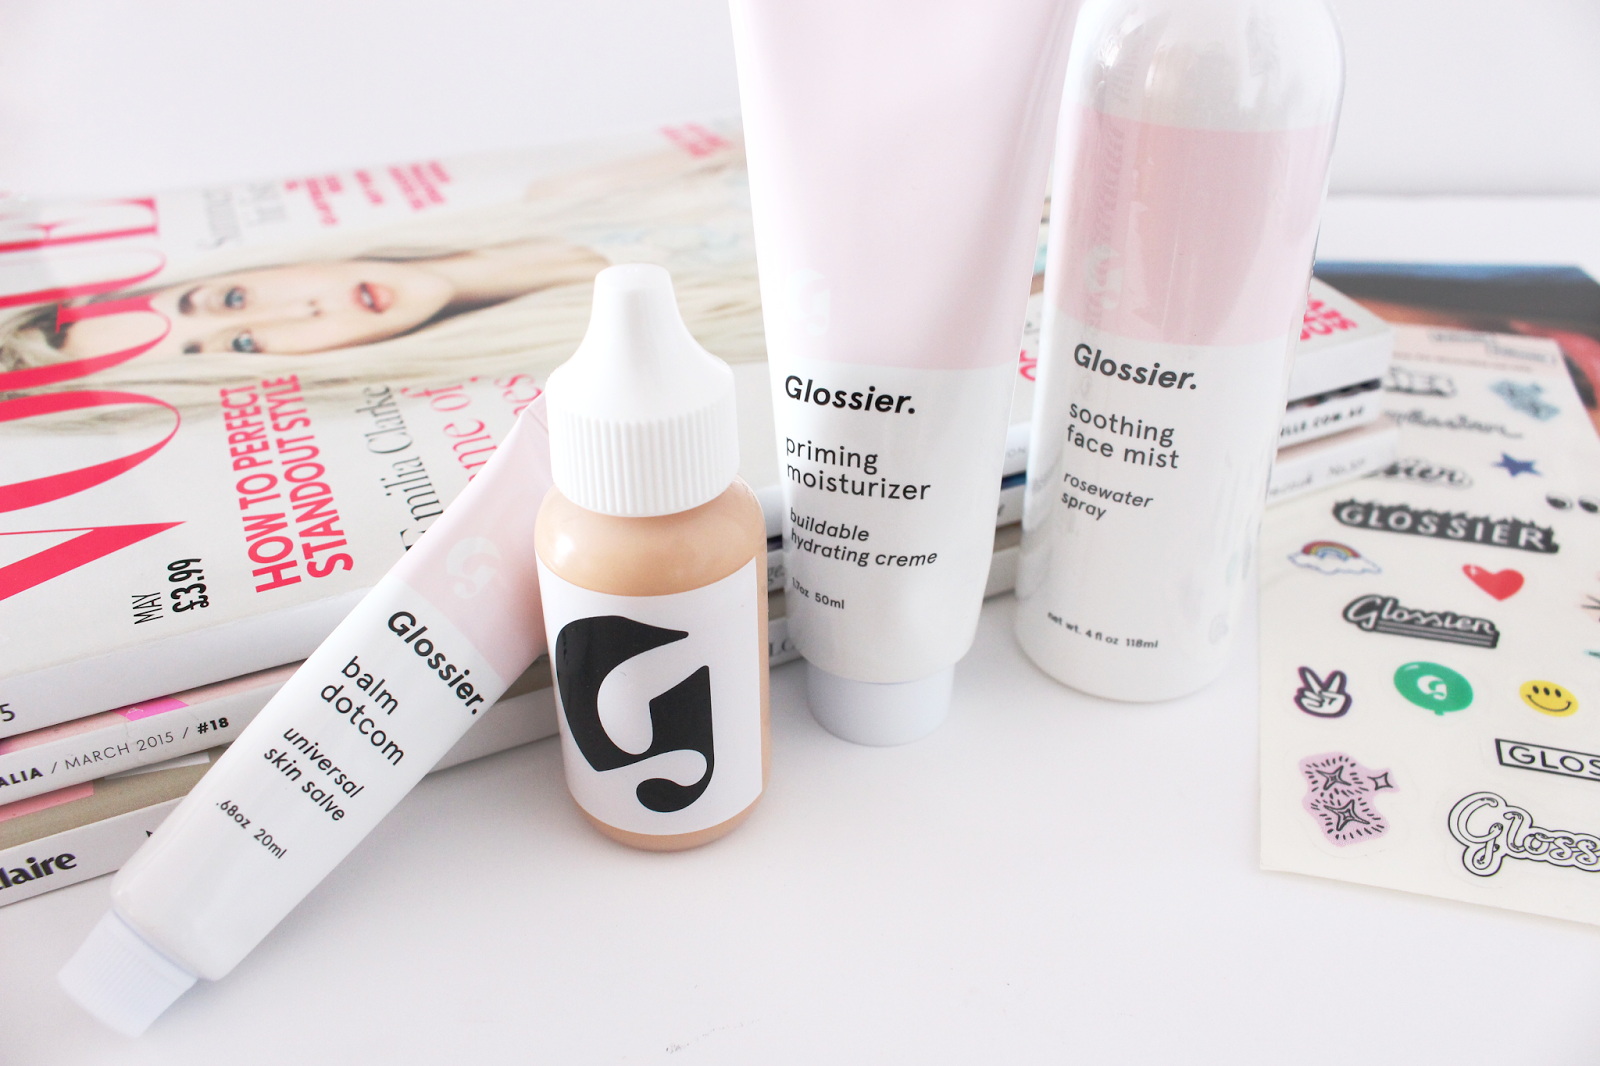 glossier in the uk - Glossier Review